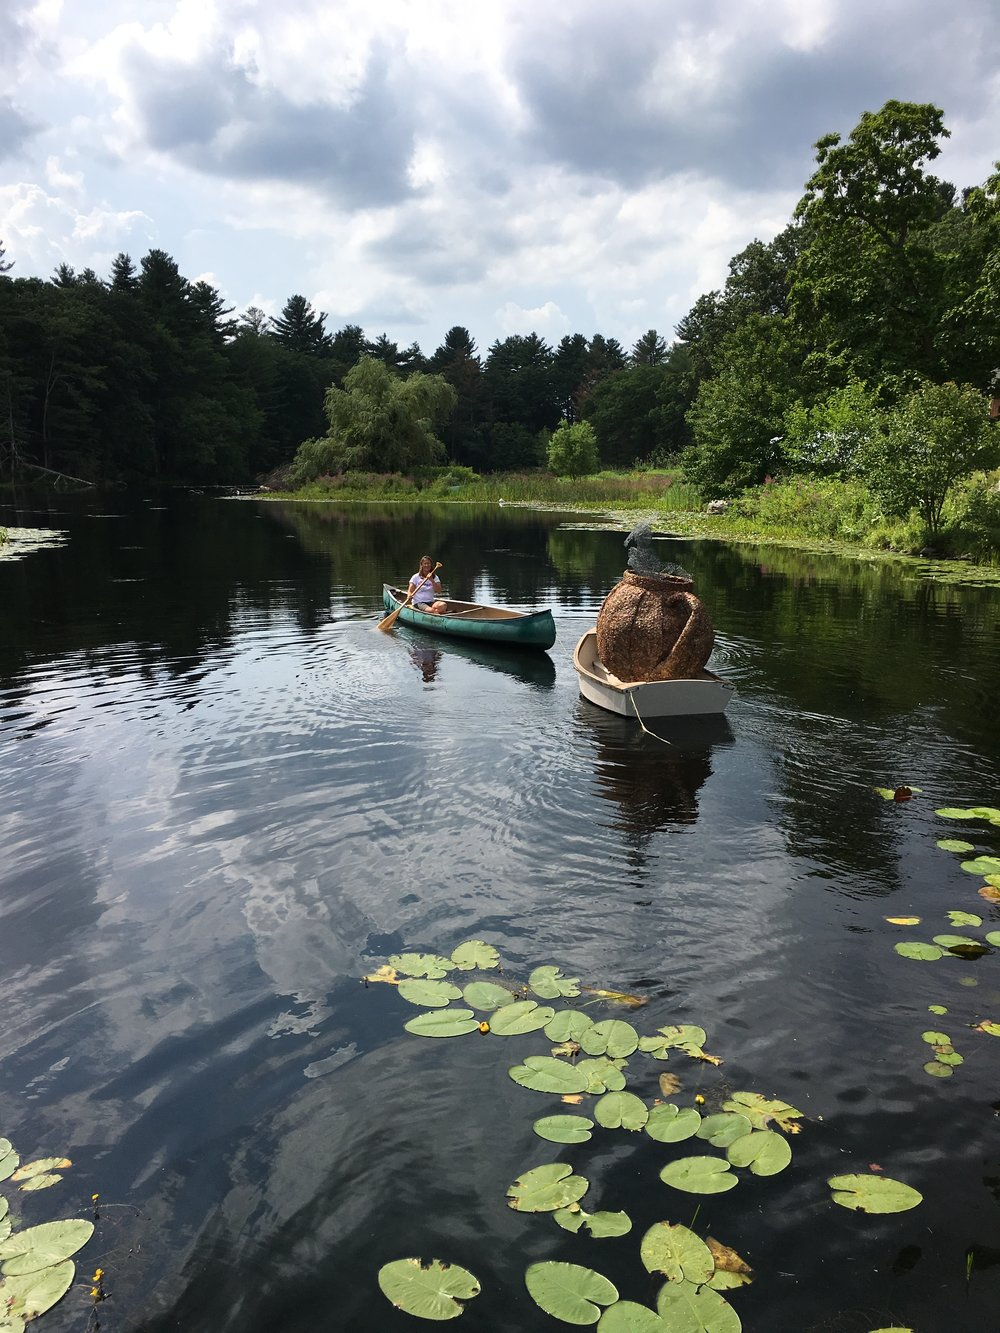 Gabi in the canoe taking our sculpture for a tour of the pond.